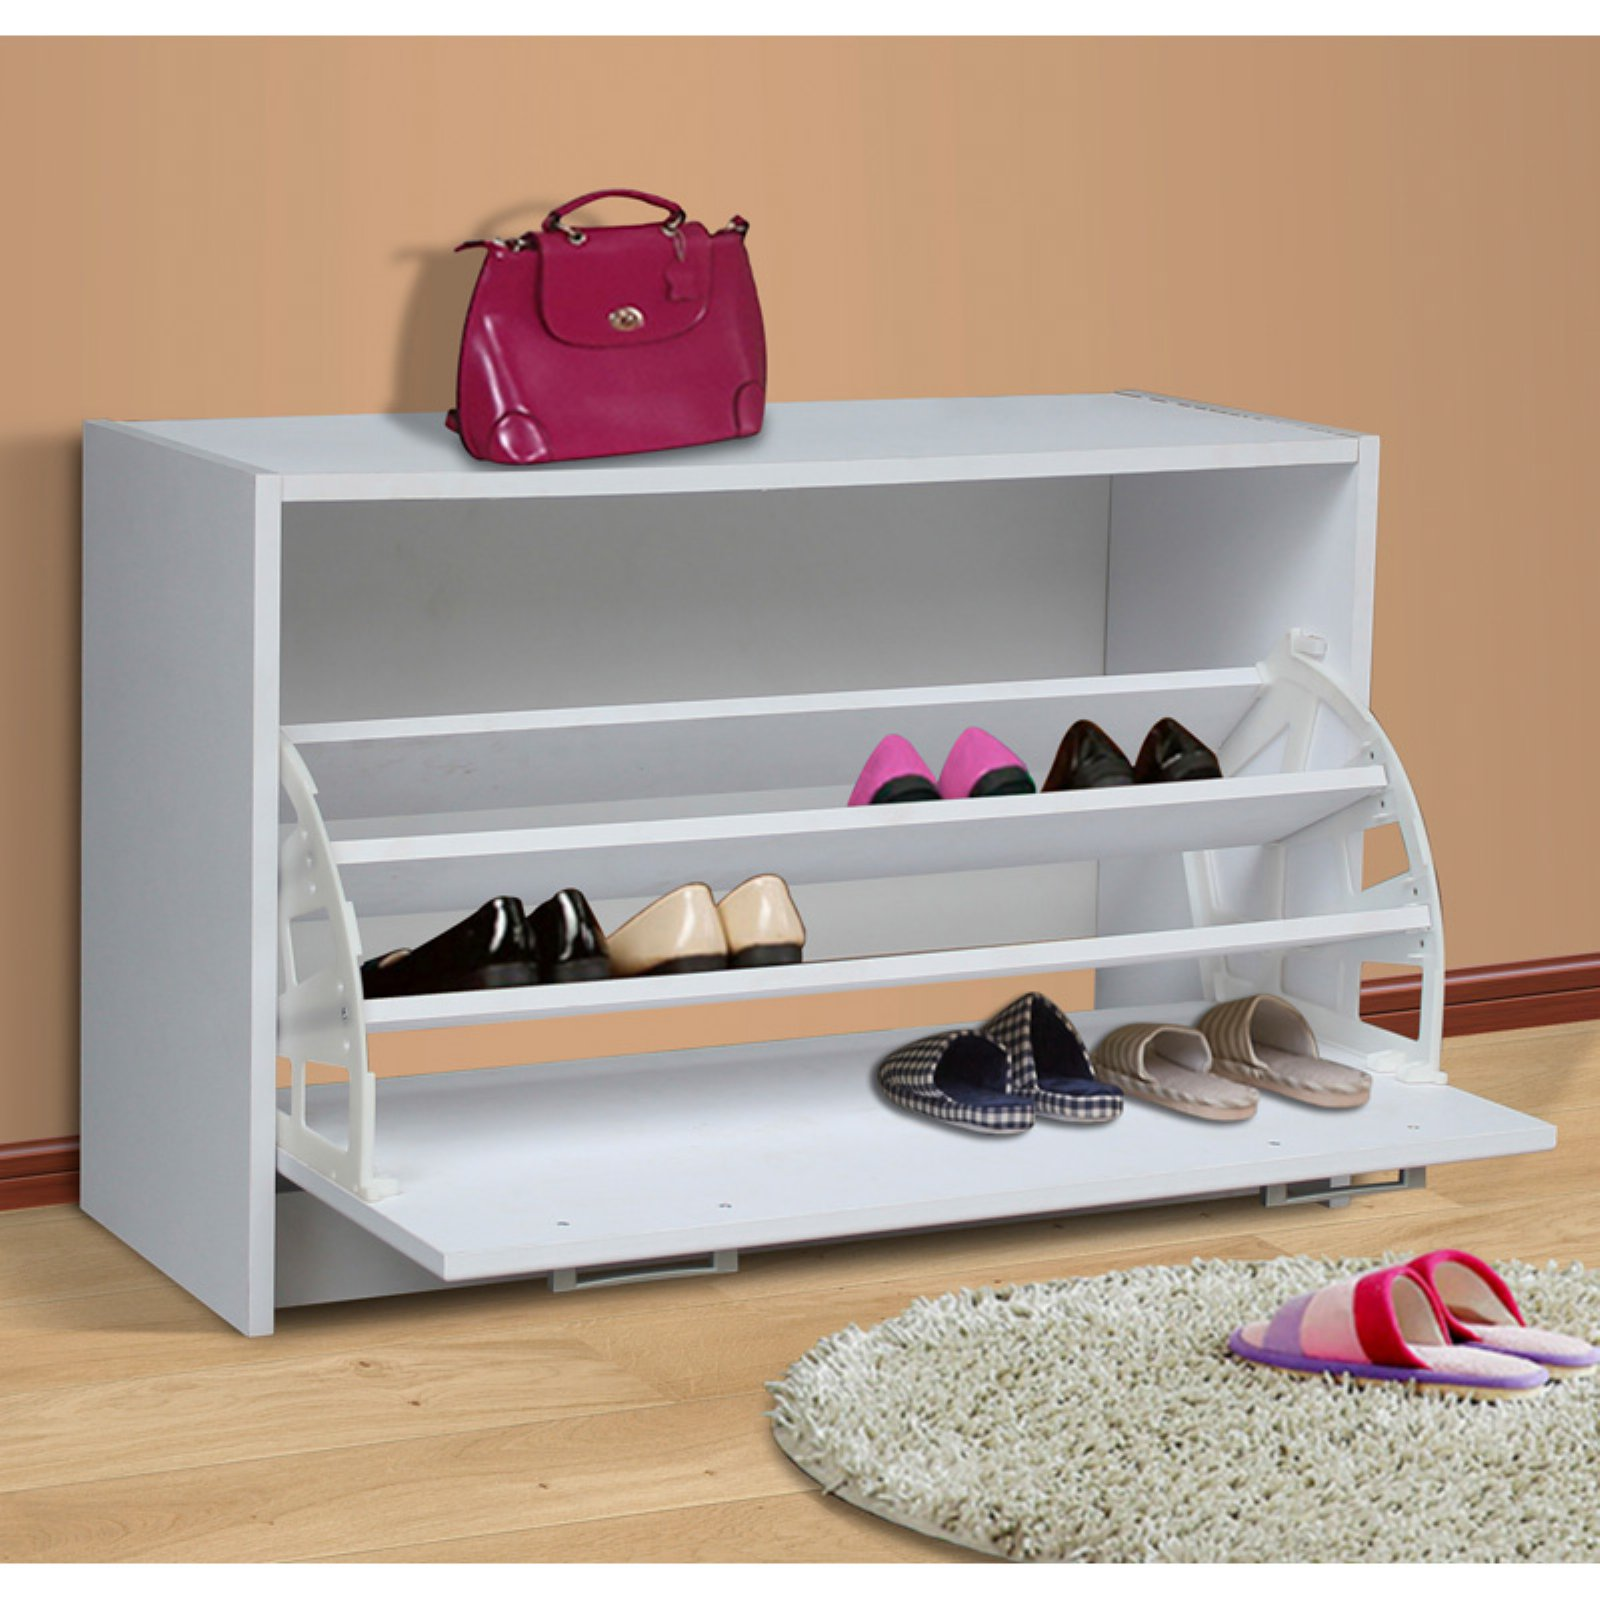 4D Concepts Deluxe Single Shoe Cabinet - White